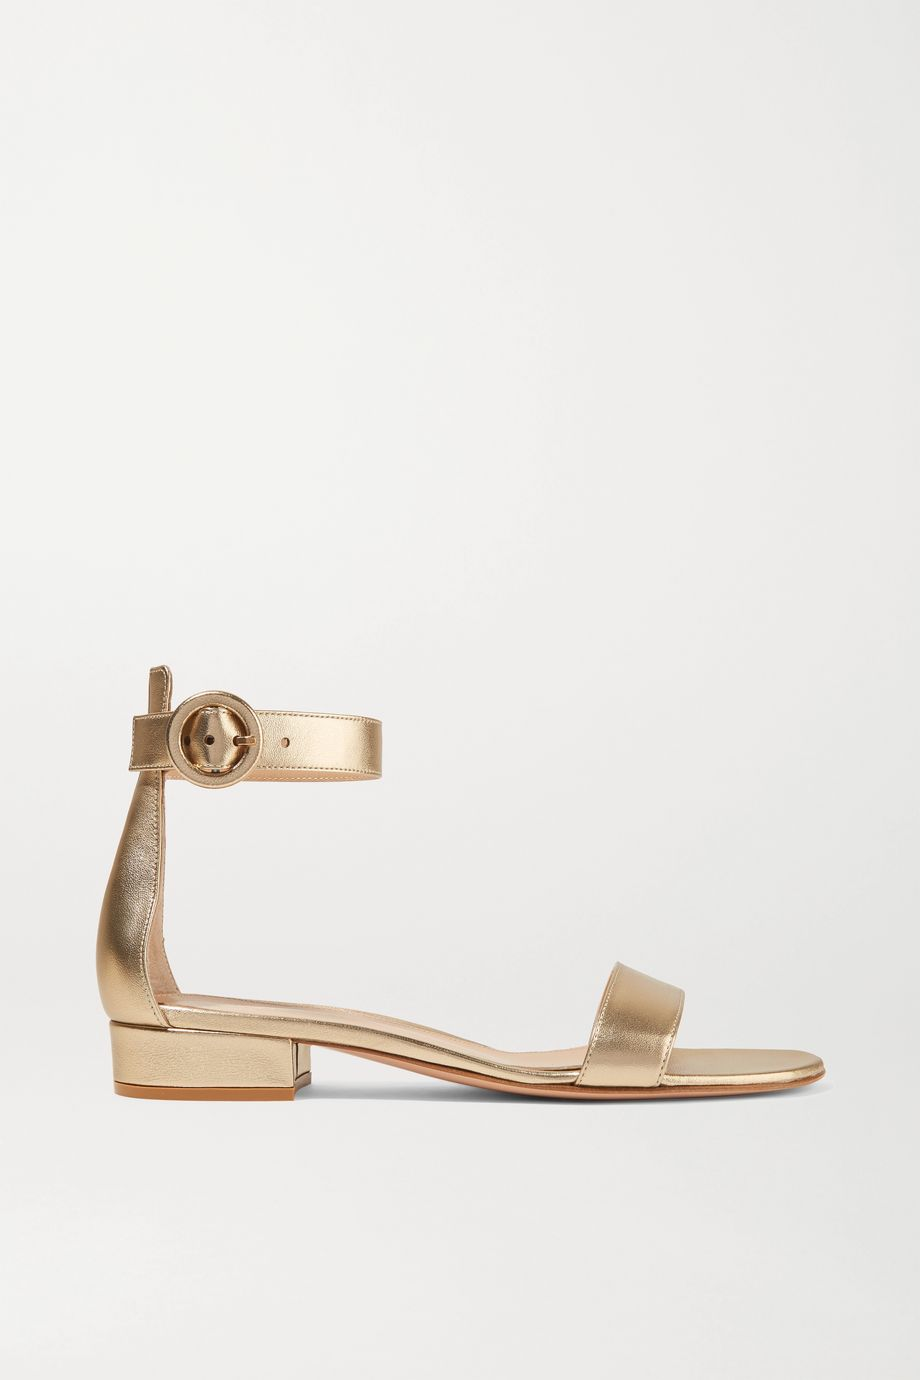 Gianvito Rossi Versilia 20 metallic leather sandals